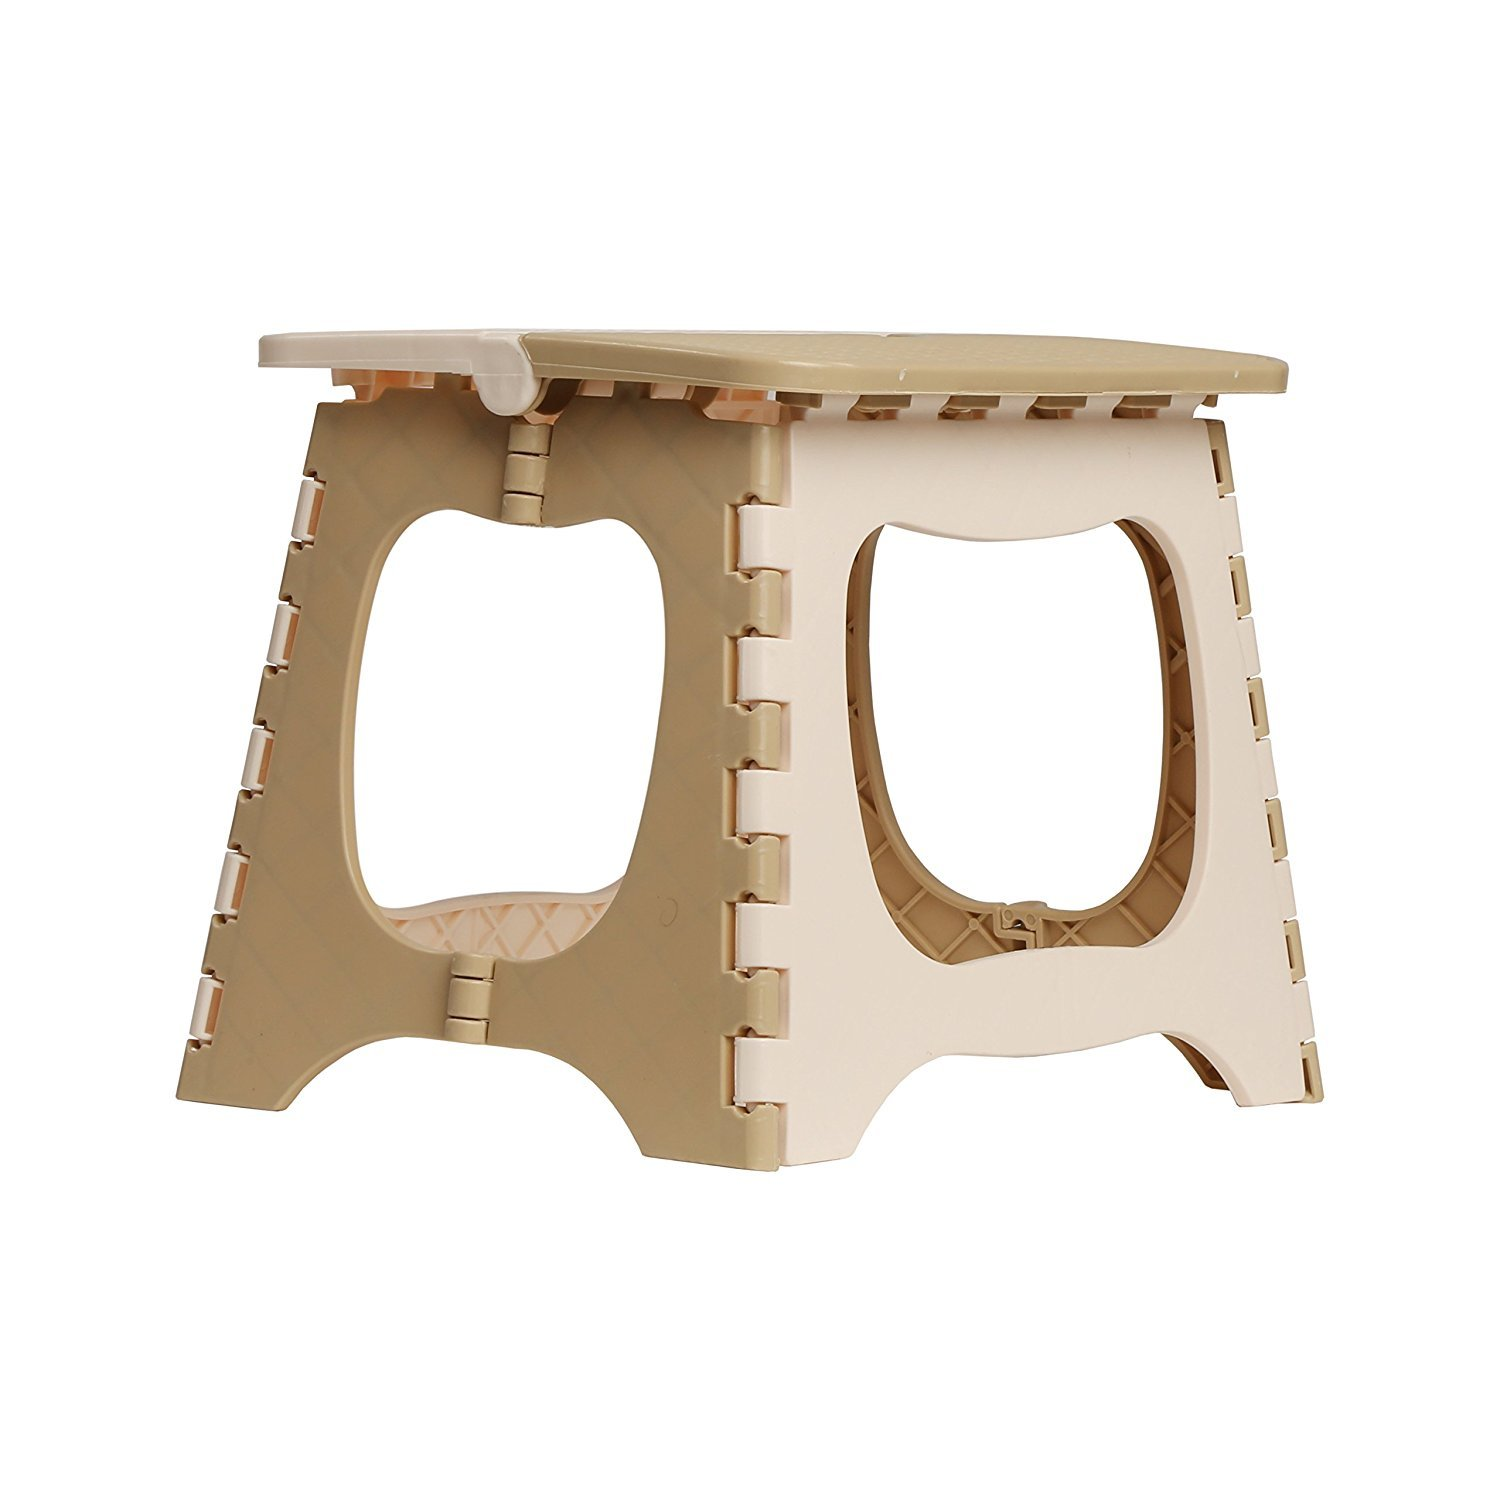 Stools : Buy Stools Online at Low Prices in India - Amazon.in